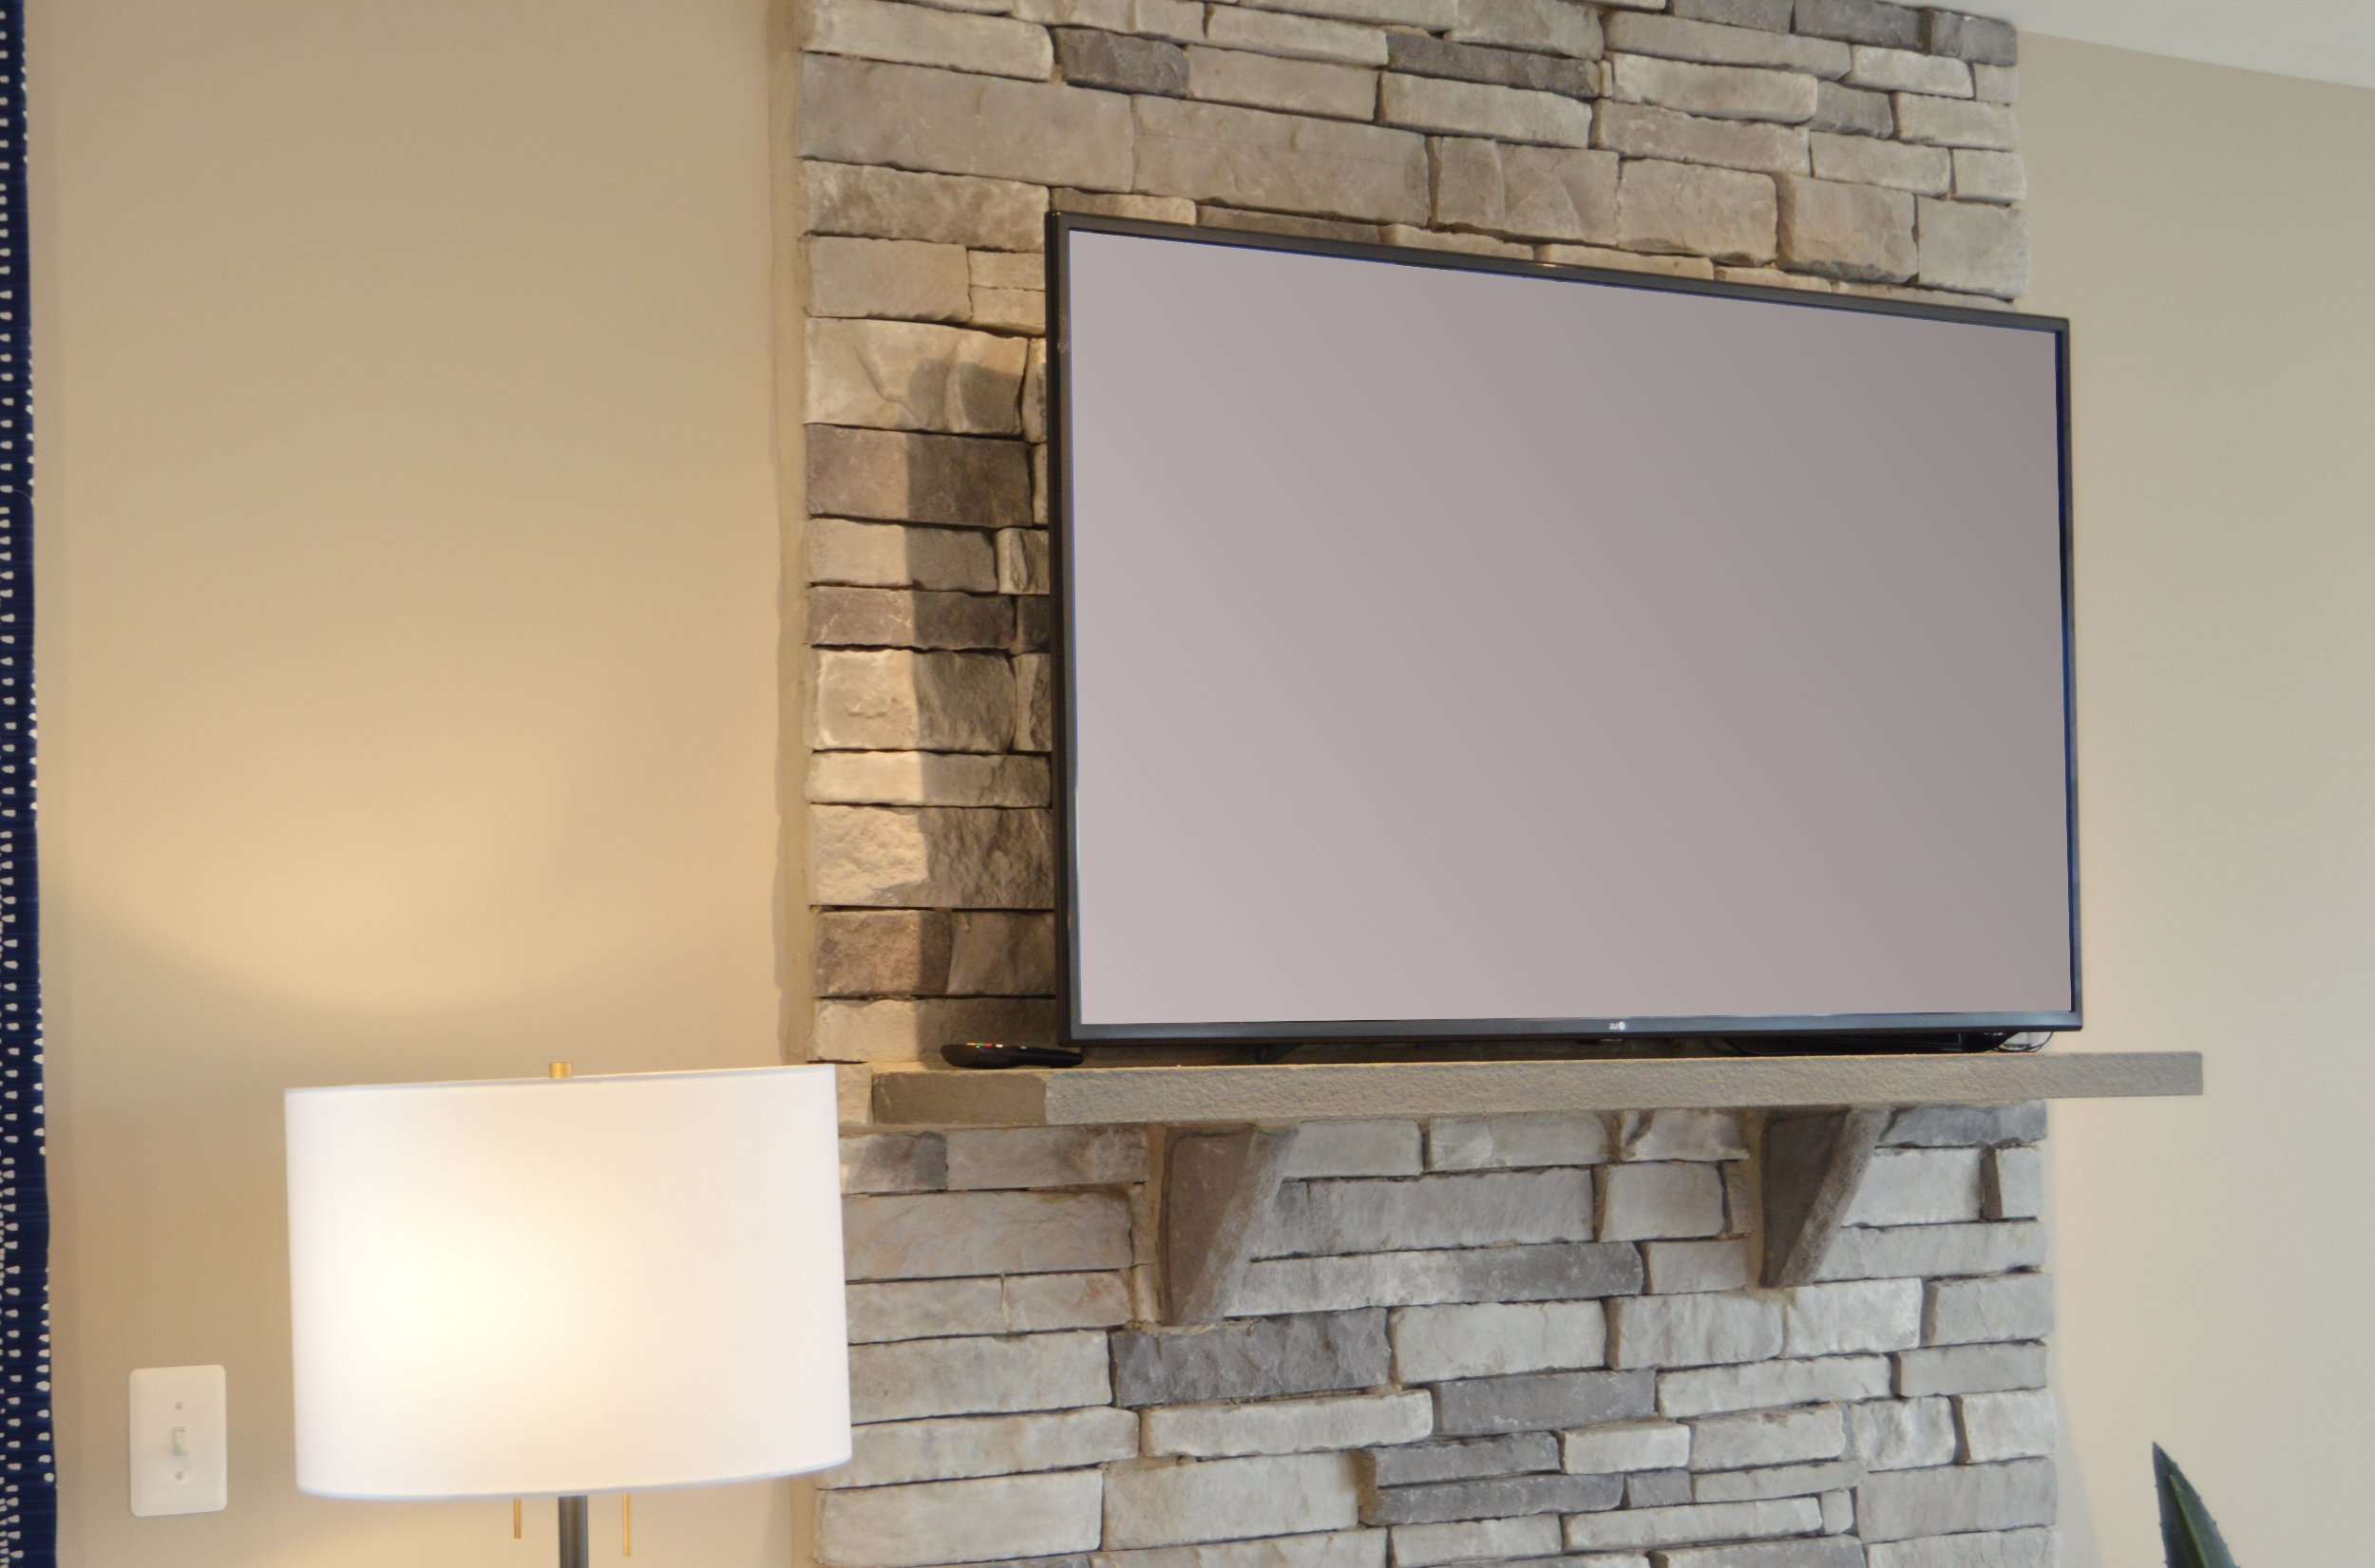 Crofton Electrician Finished Basement TV install